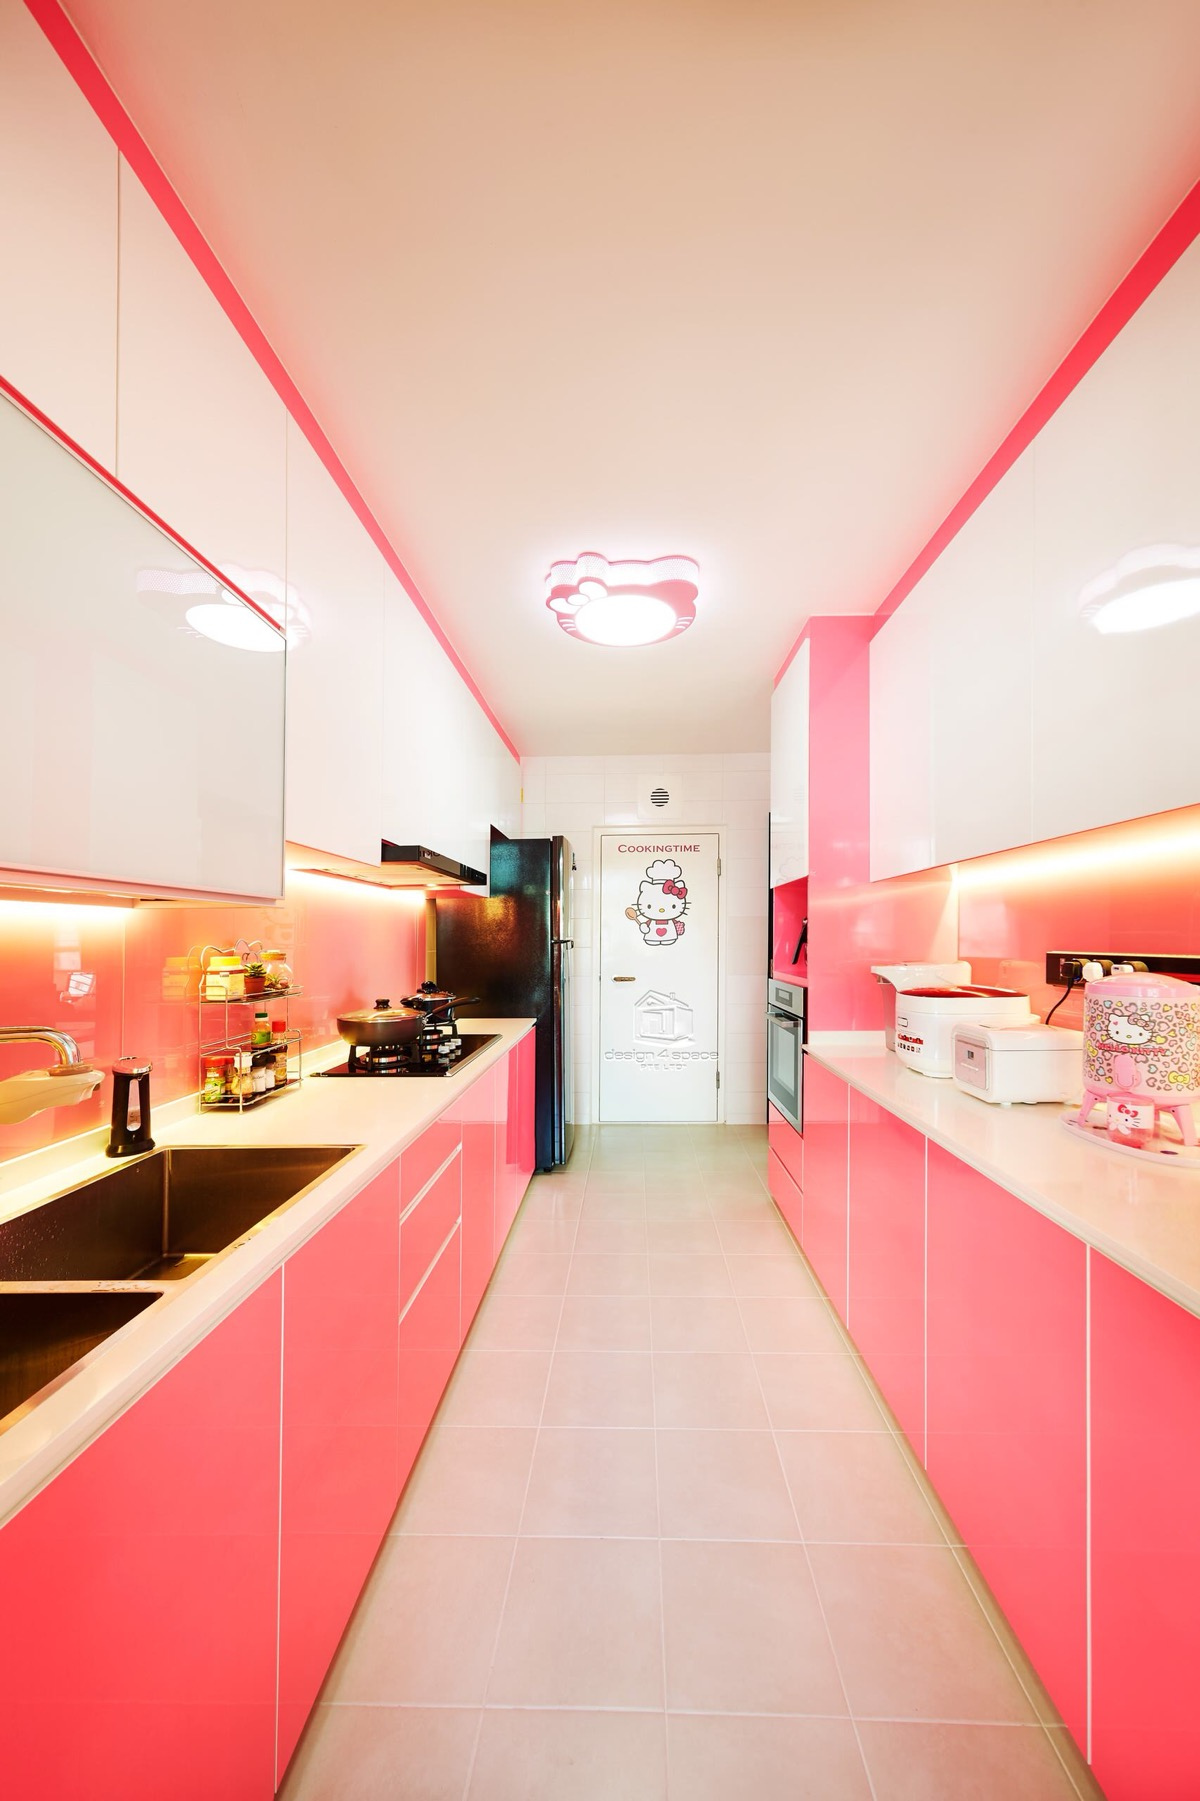 51 Inspirational Pink Kitchens With Tips & Accessories To Help You Design Yours images 41